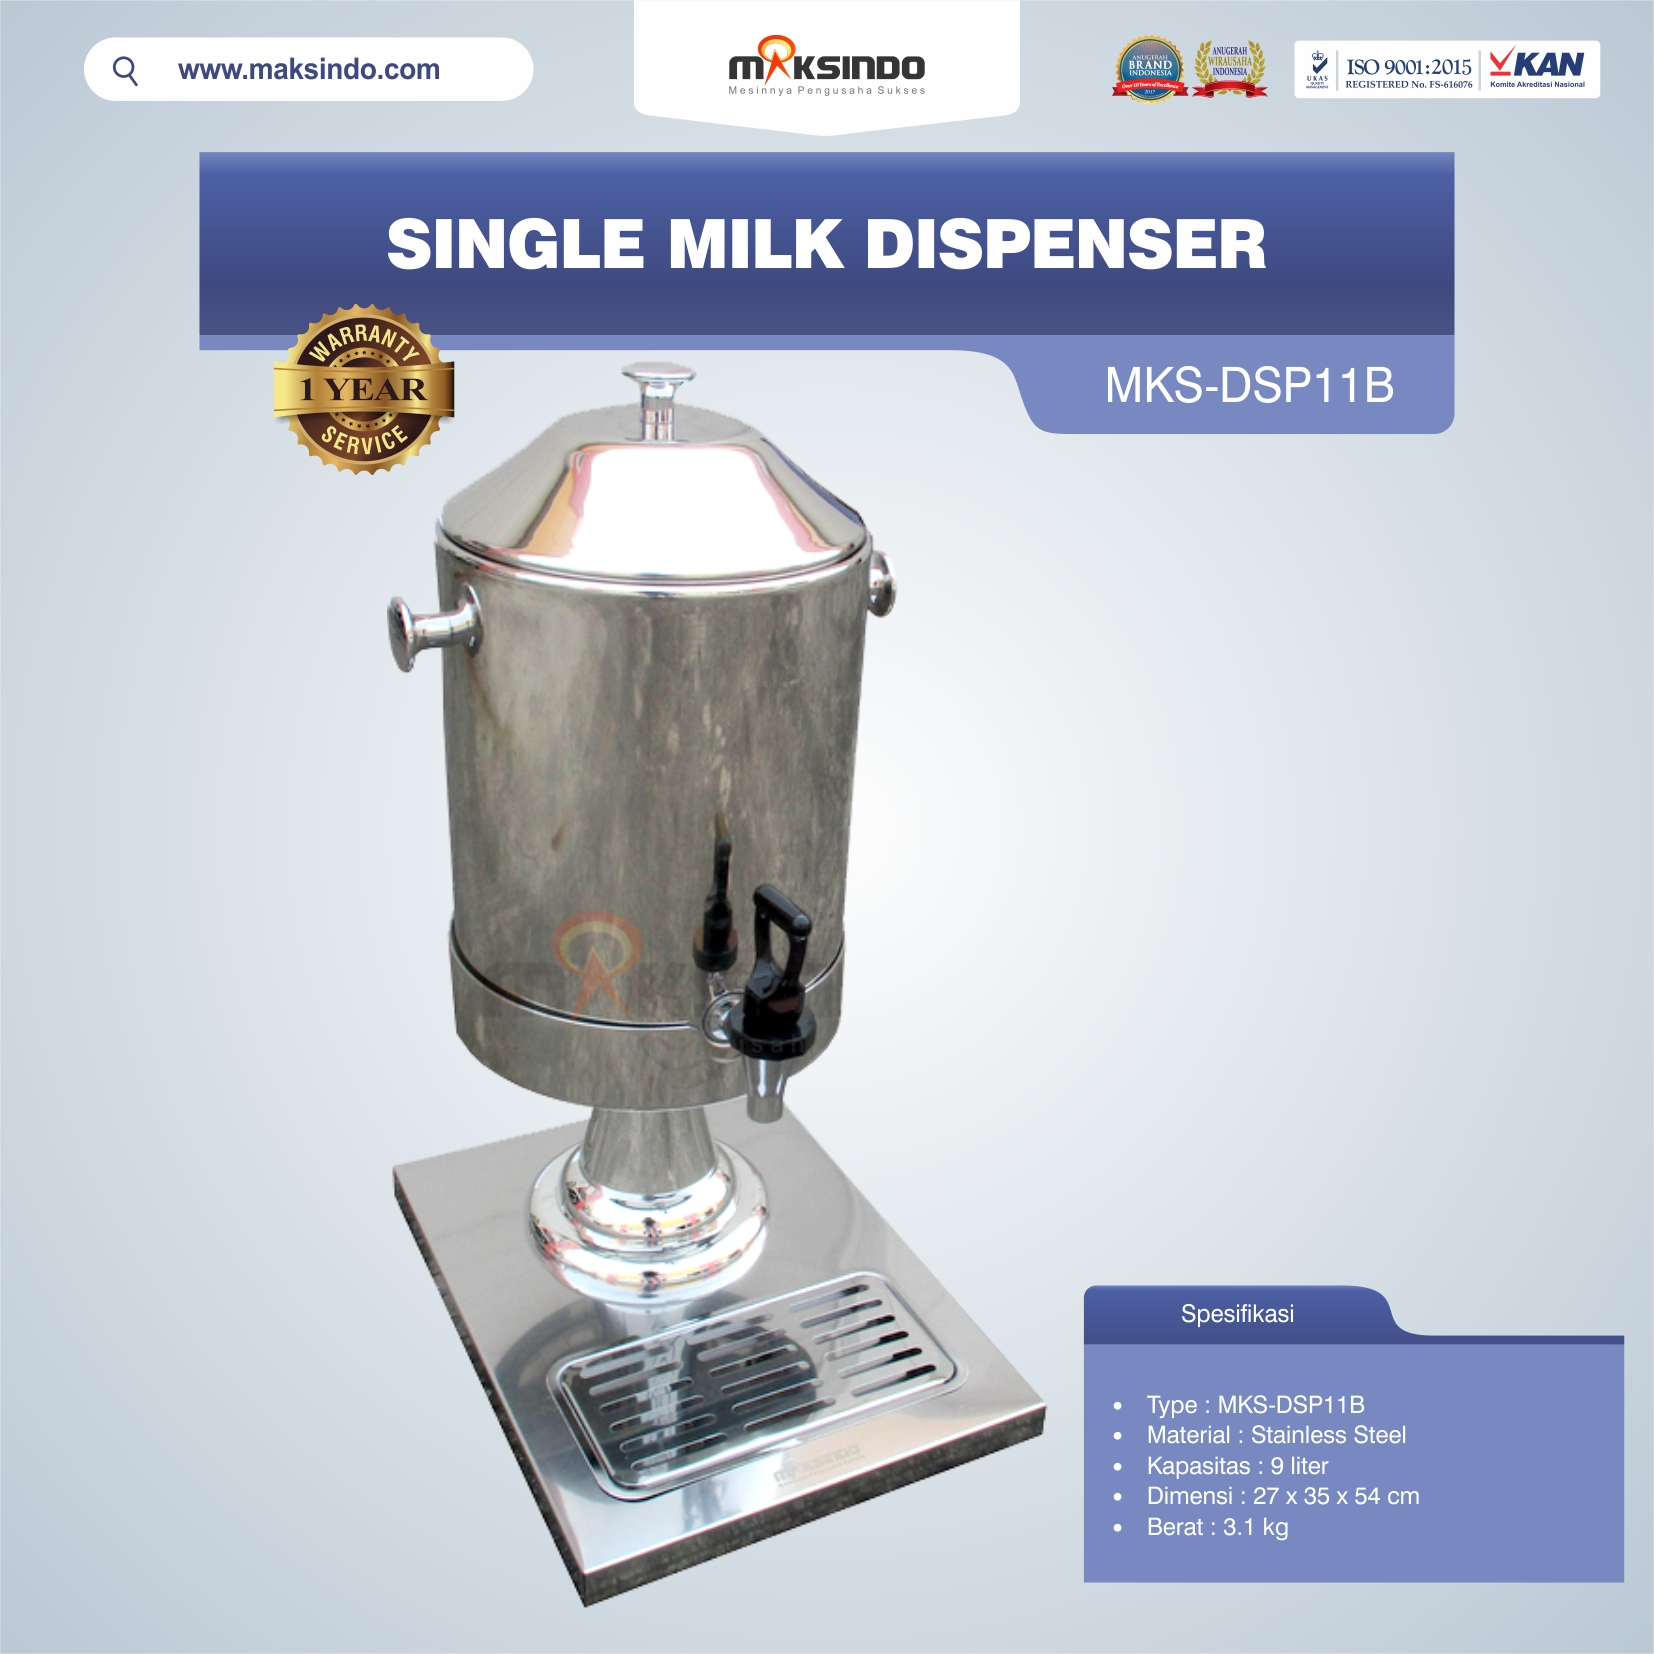 Jual Single Milk Dispenser MKS-DSP11B di Blitar